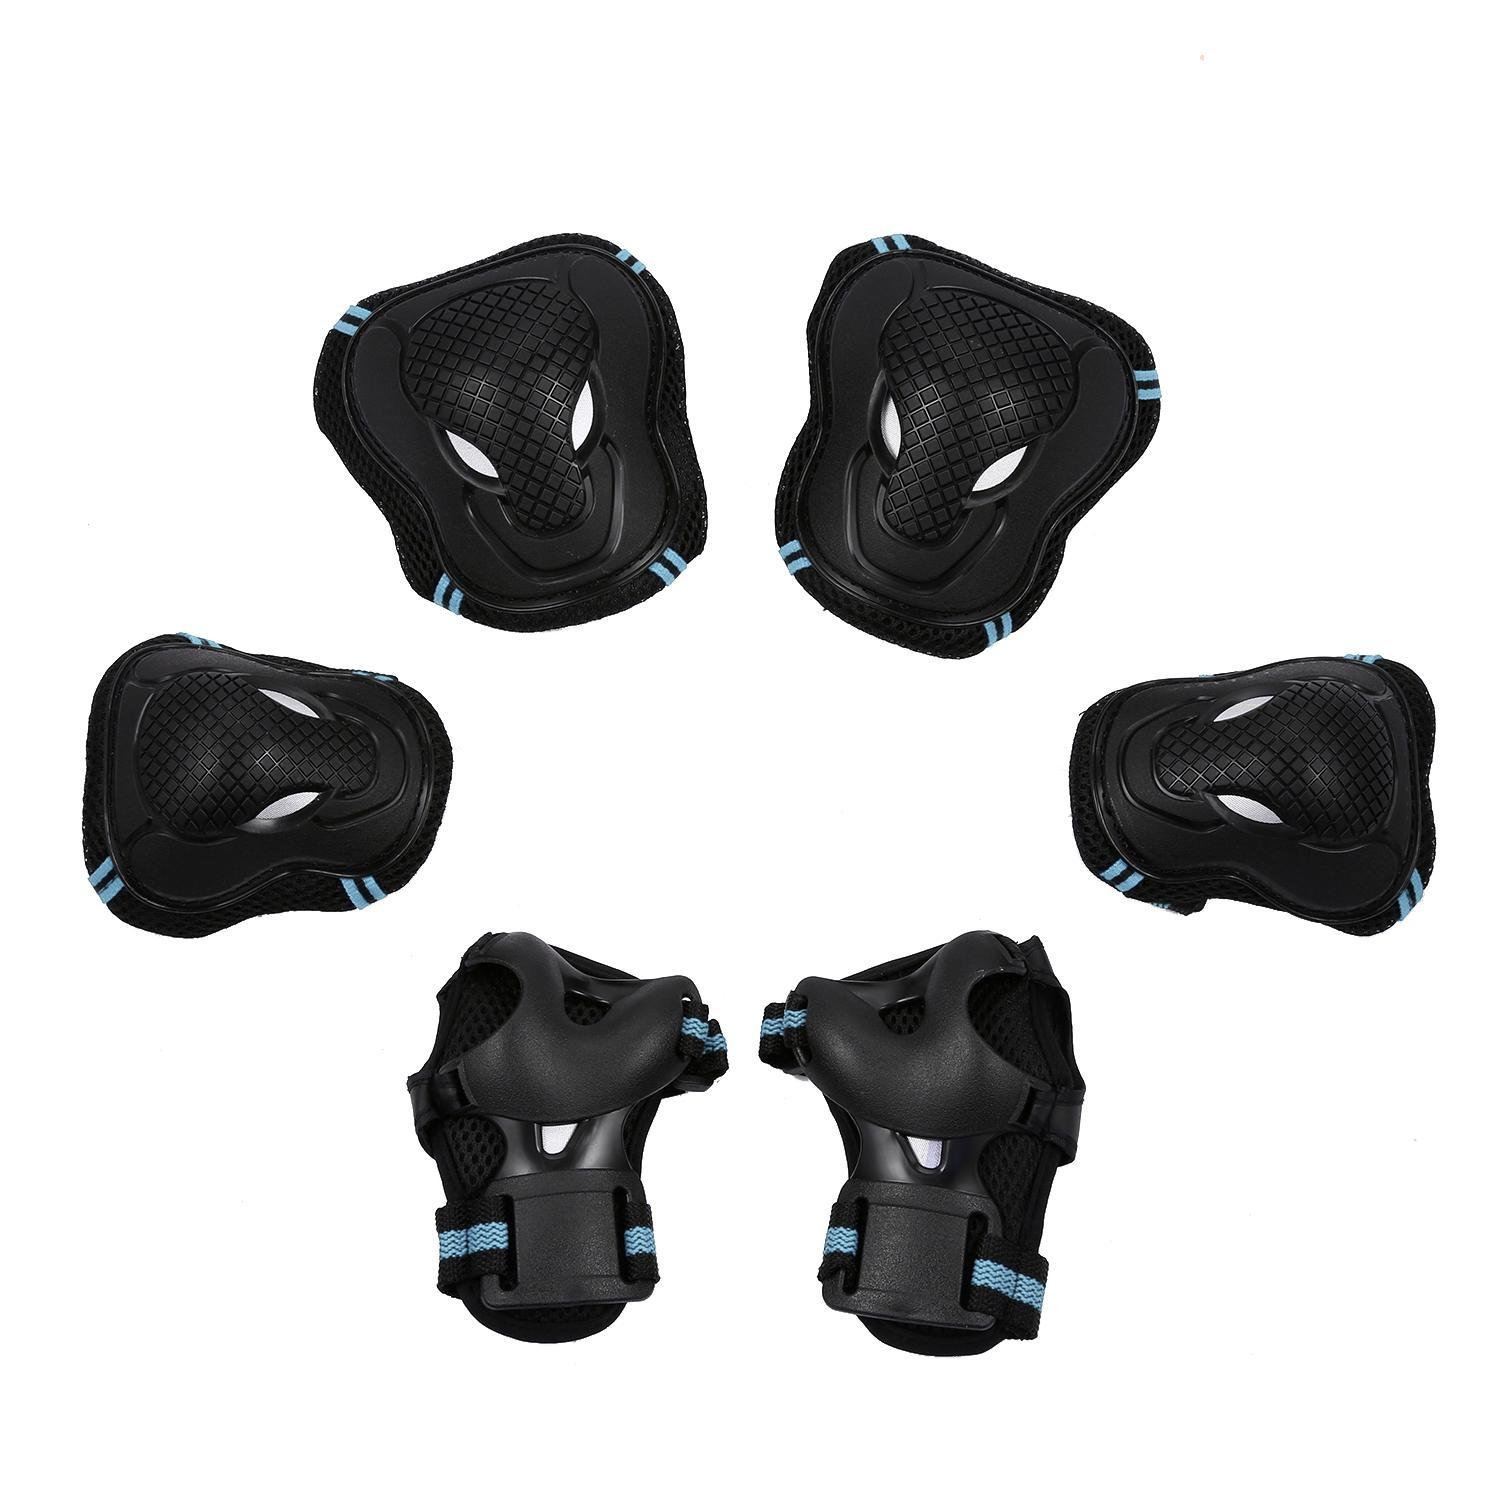 Benlet Sports Protective Gear Safety Pad Safeguard (Knee Elbow Wrist) Support Pad Set Equipment for Kids Roller Bicycle BMX Bike Skateboard Protector Guards Pads(Blue, S)